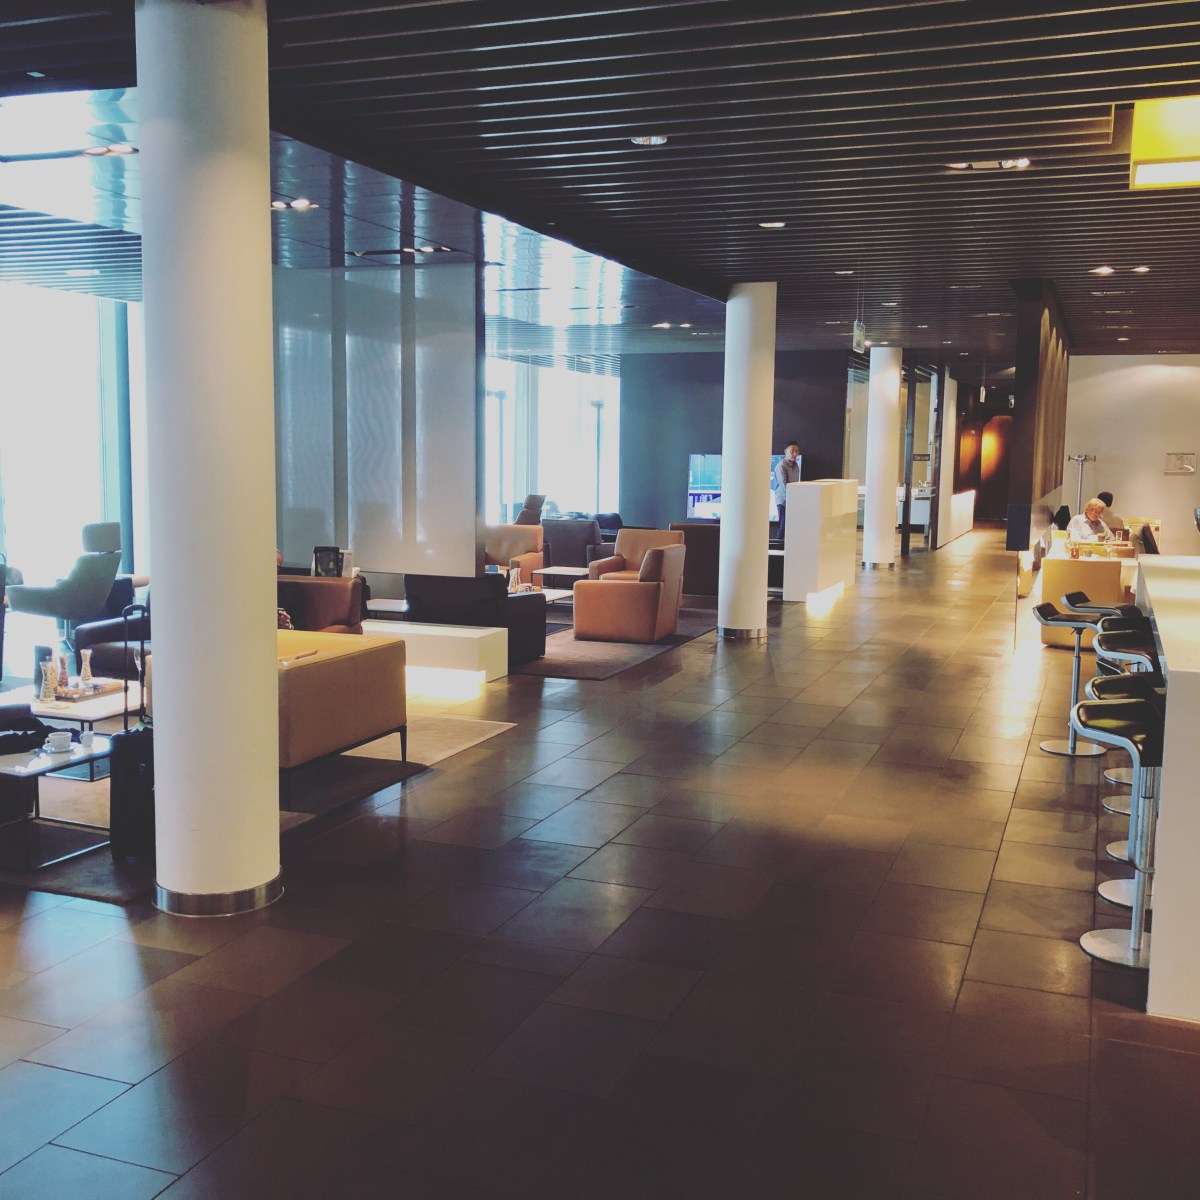 LUFTHANSA FIRST CLASS TERMINAL FRANKFURT - REVIEW